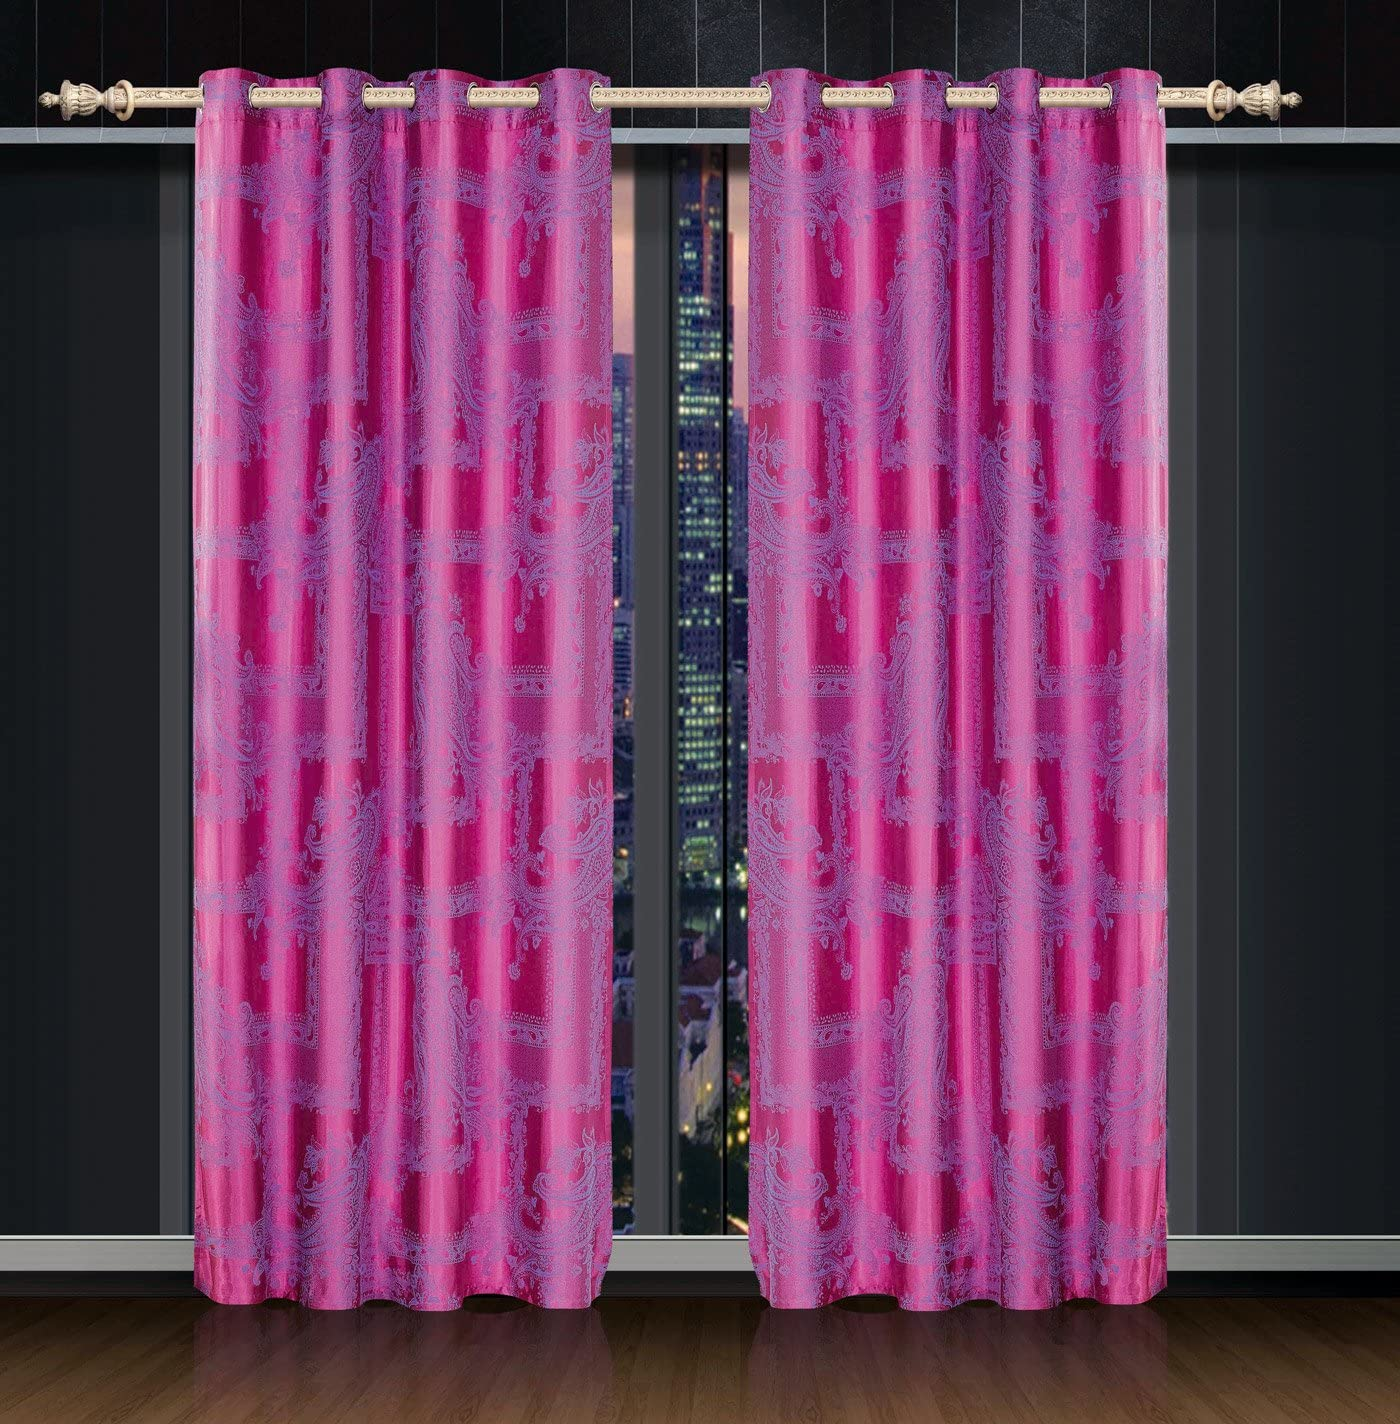 Dolce Mela DMC461 Jacquard Damask Drapery Window Treatment